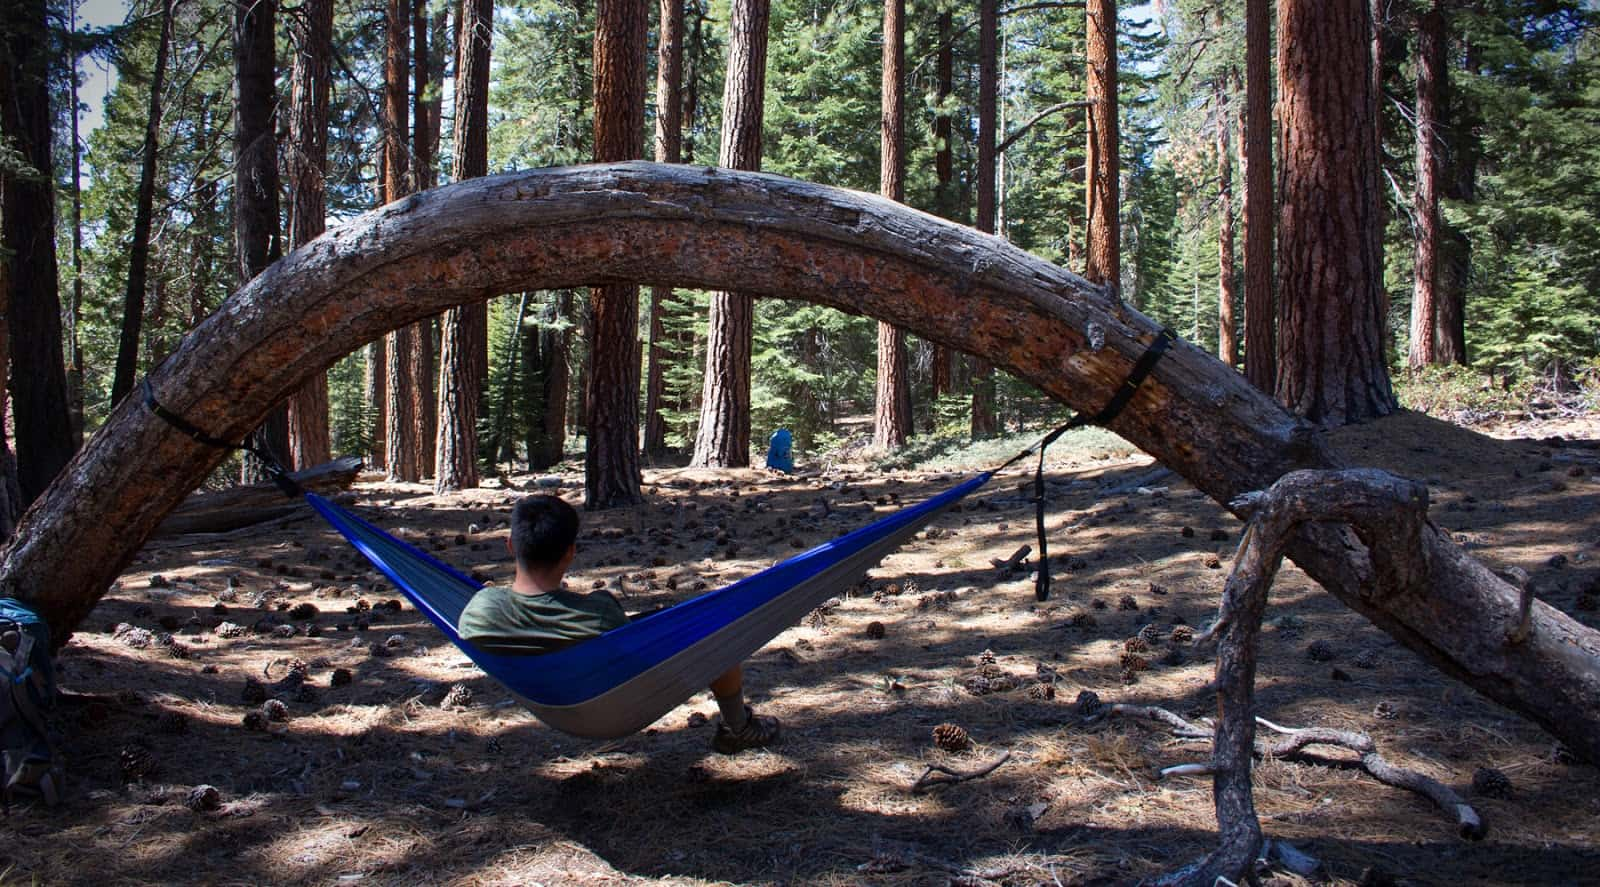 Jeff's camping hammock hanging from an arched tree trunk